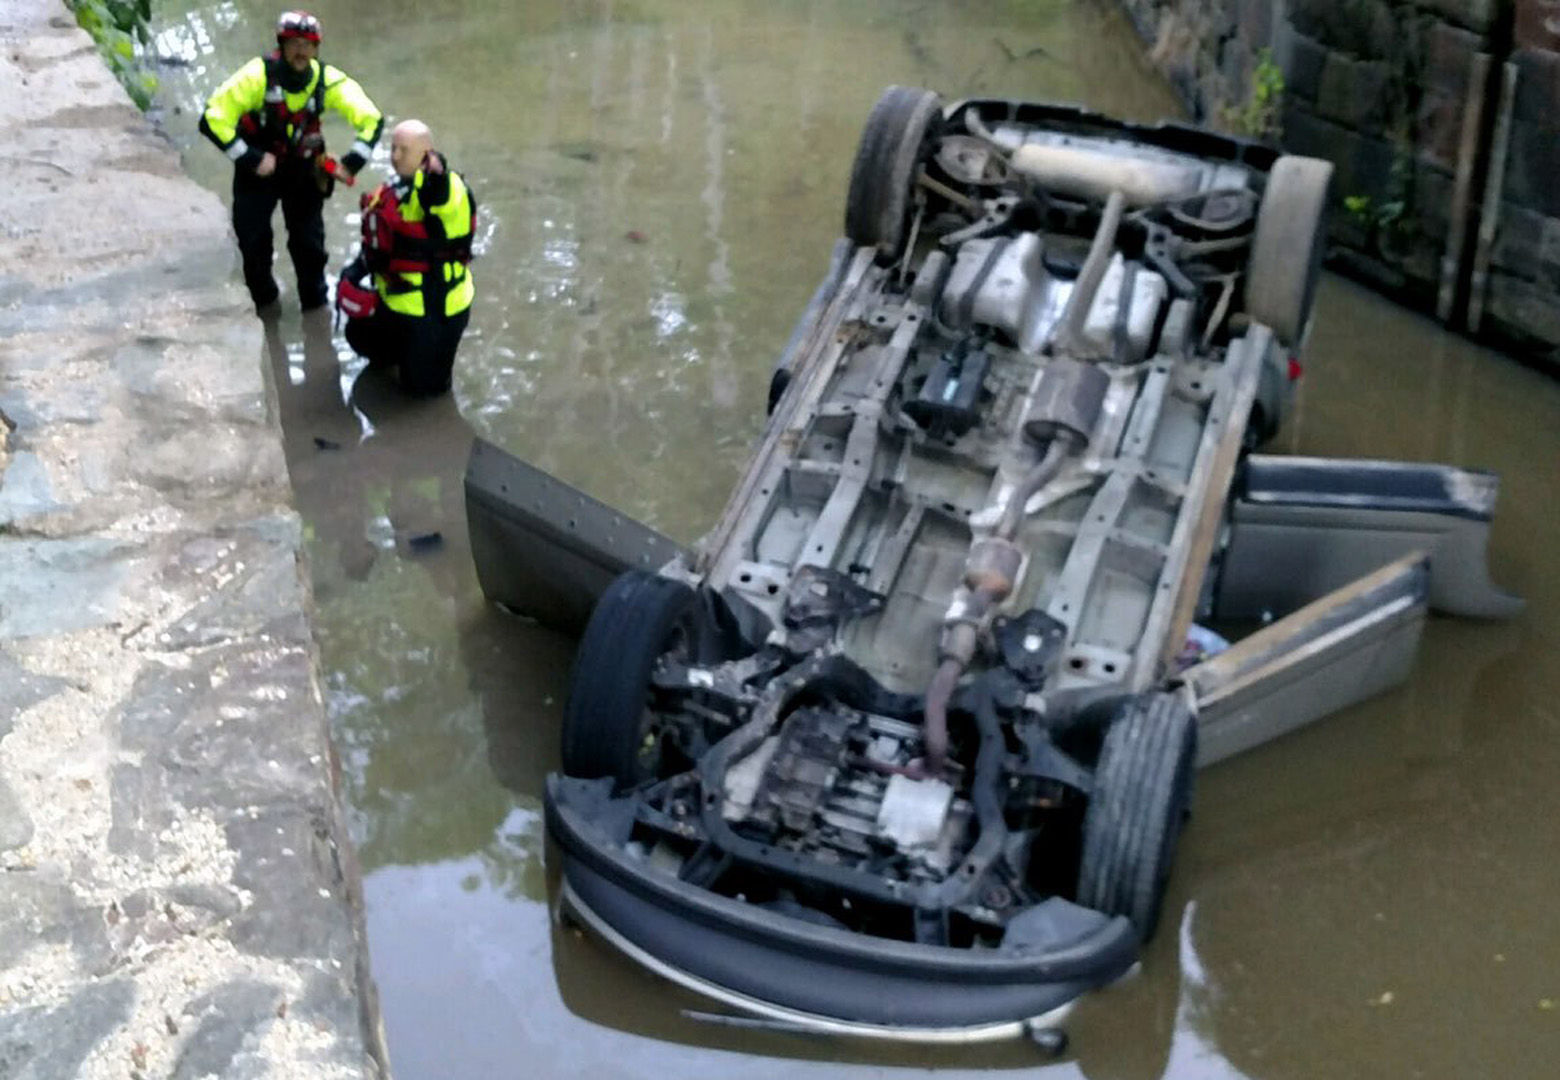 A car overturned in the C&O Canal Wednesday morning. (Courtesy Montgomery County Fire & EMS)